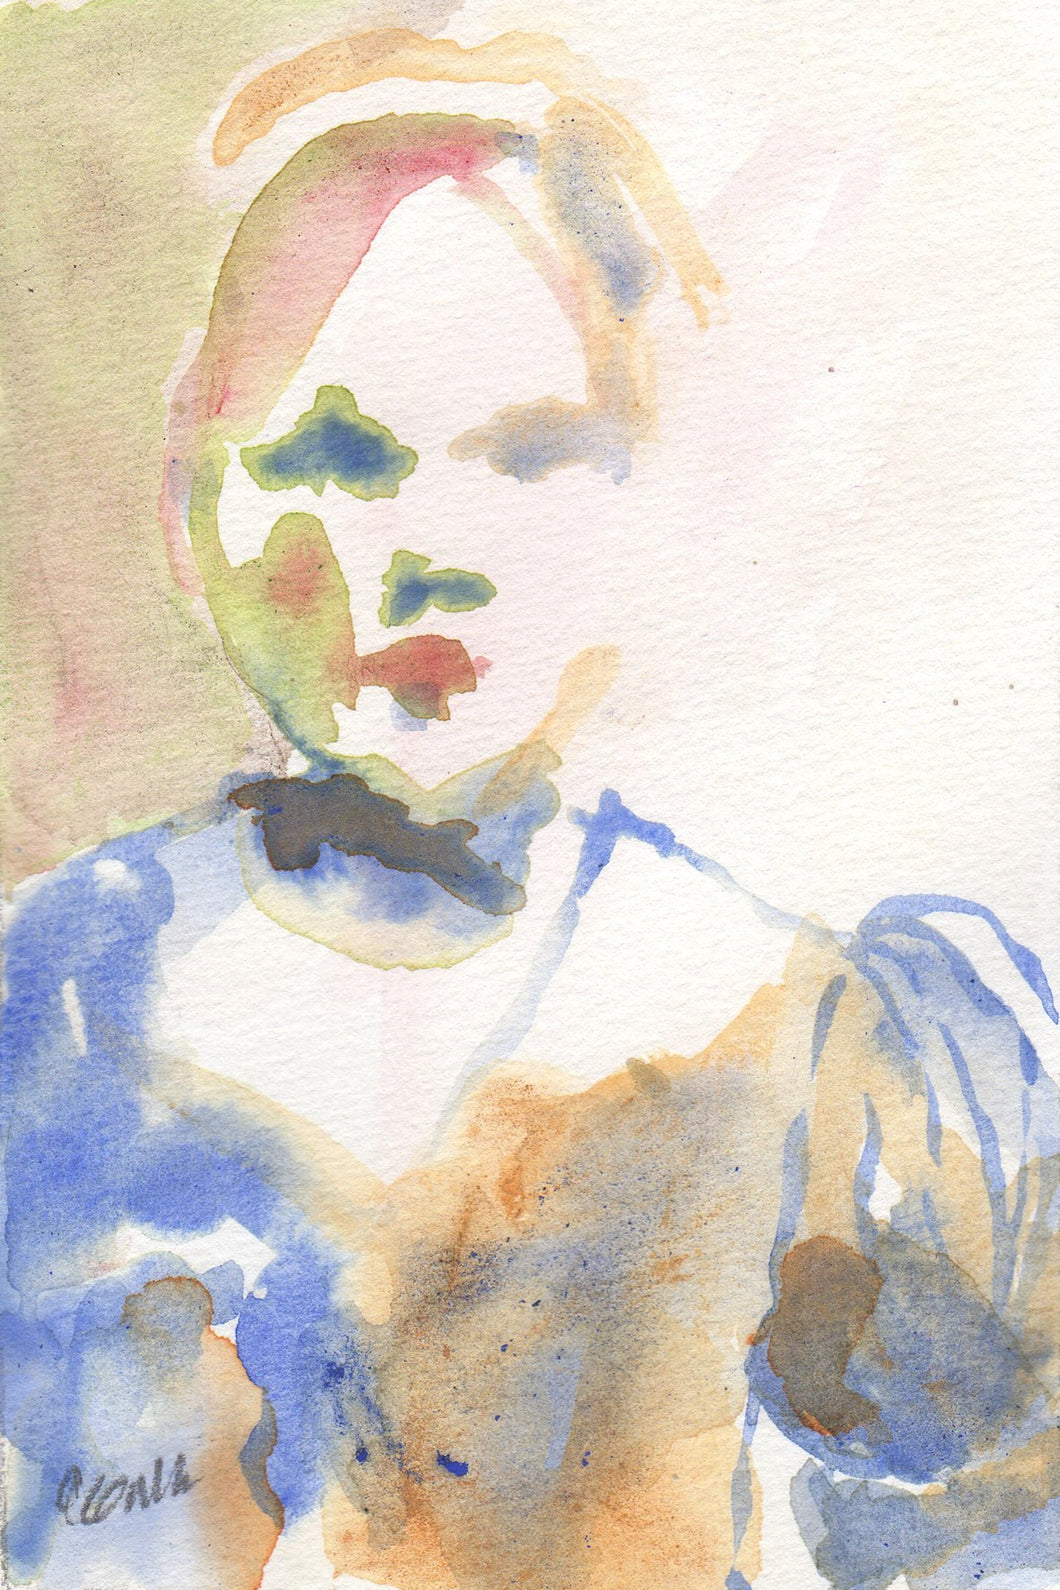 Female figure in watercolor and ink in blue and orange colors.